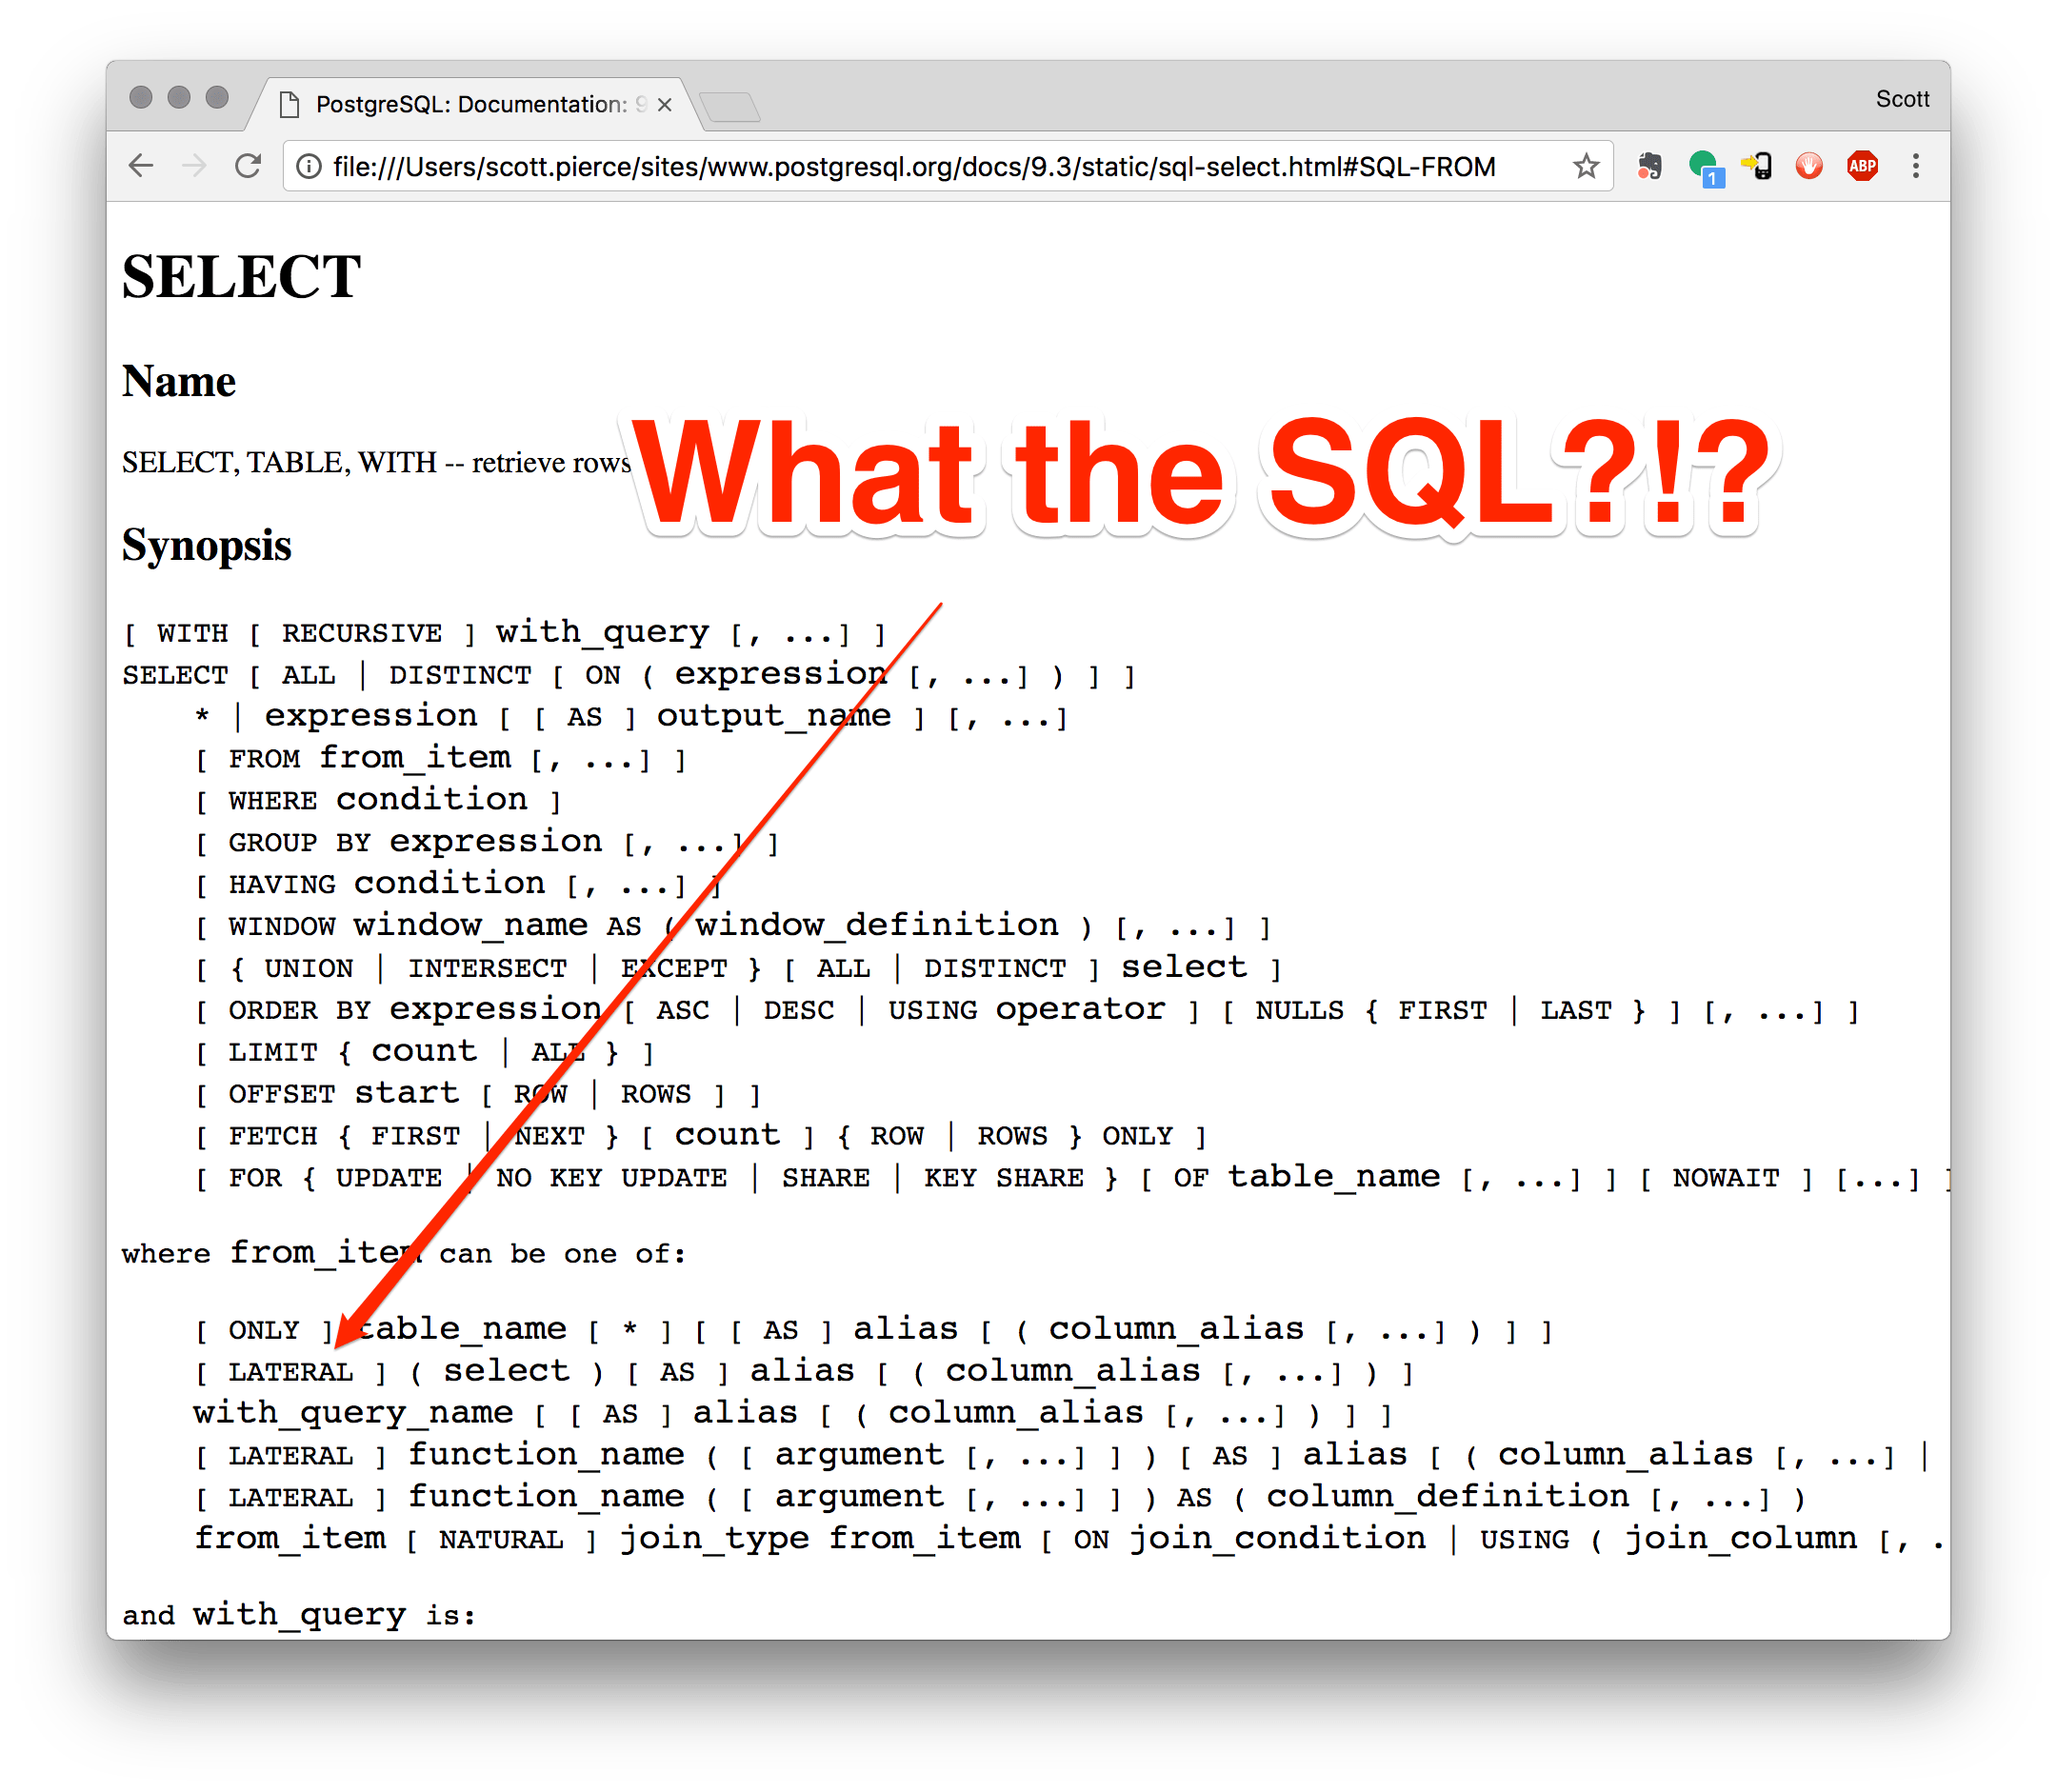 What the SQL?!? Lateral Joins